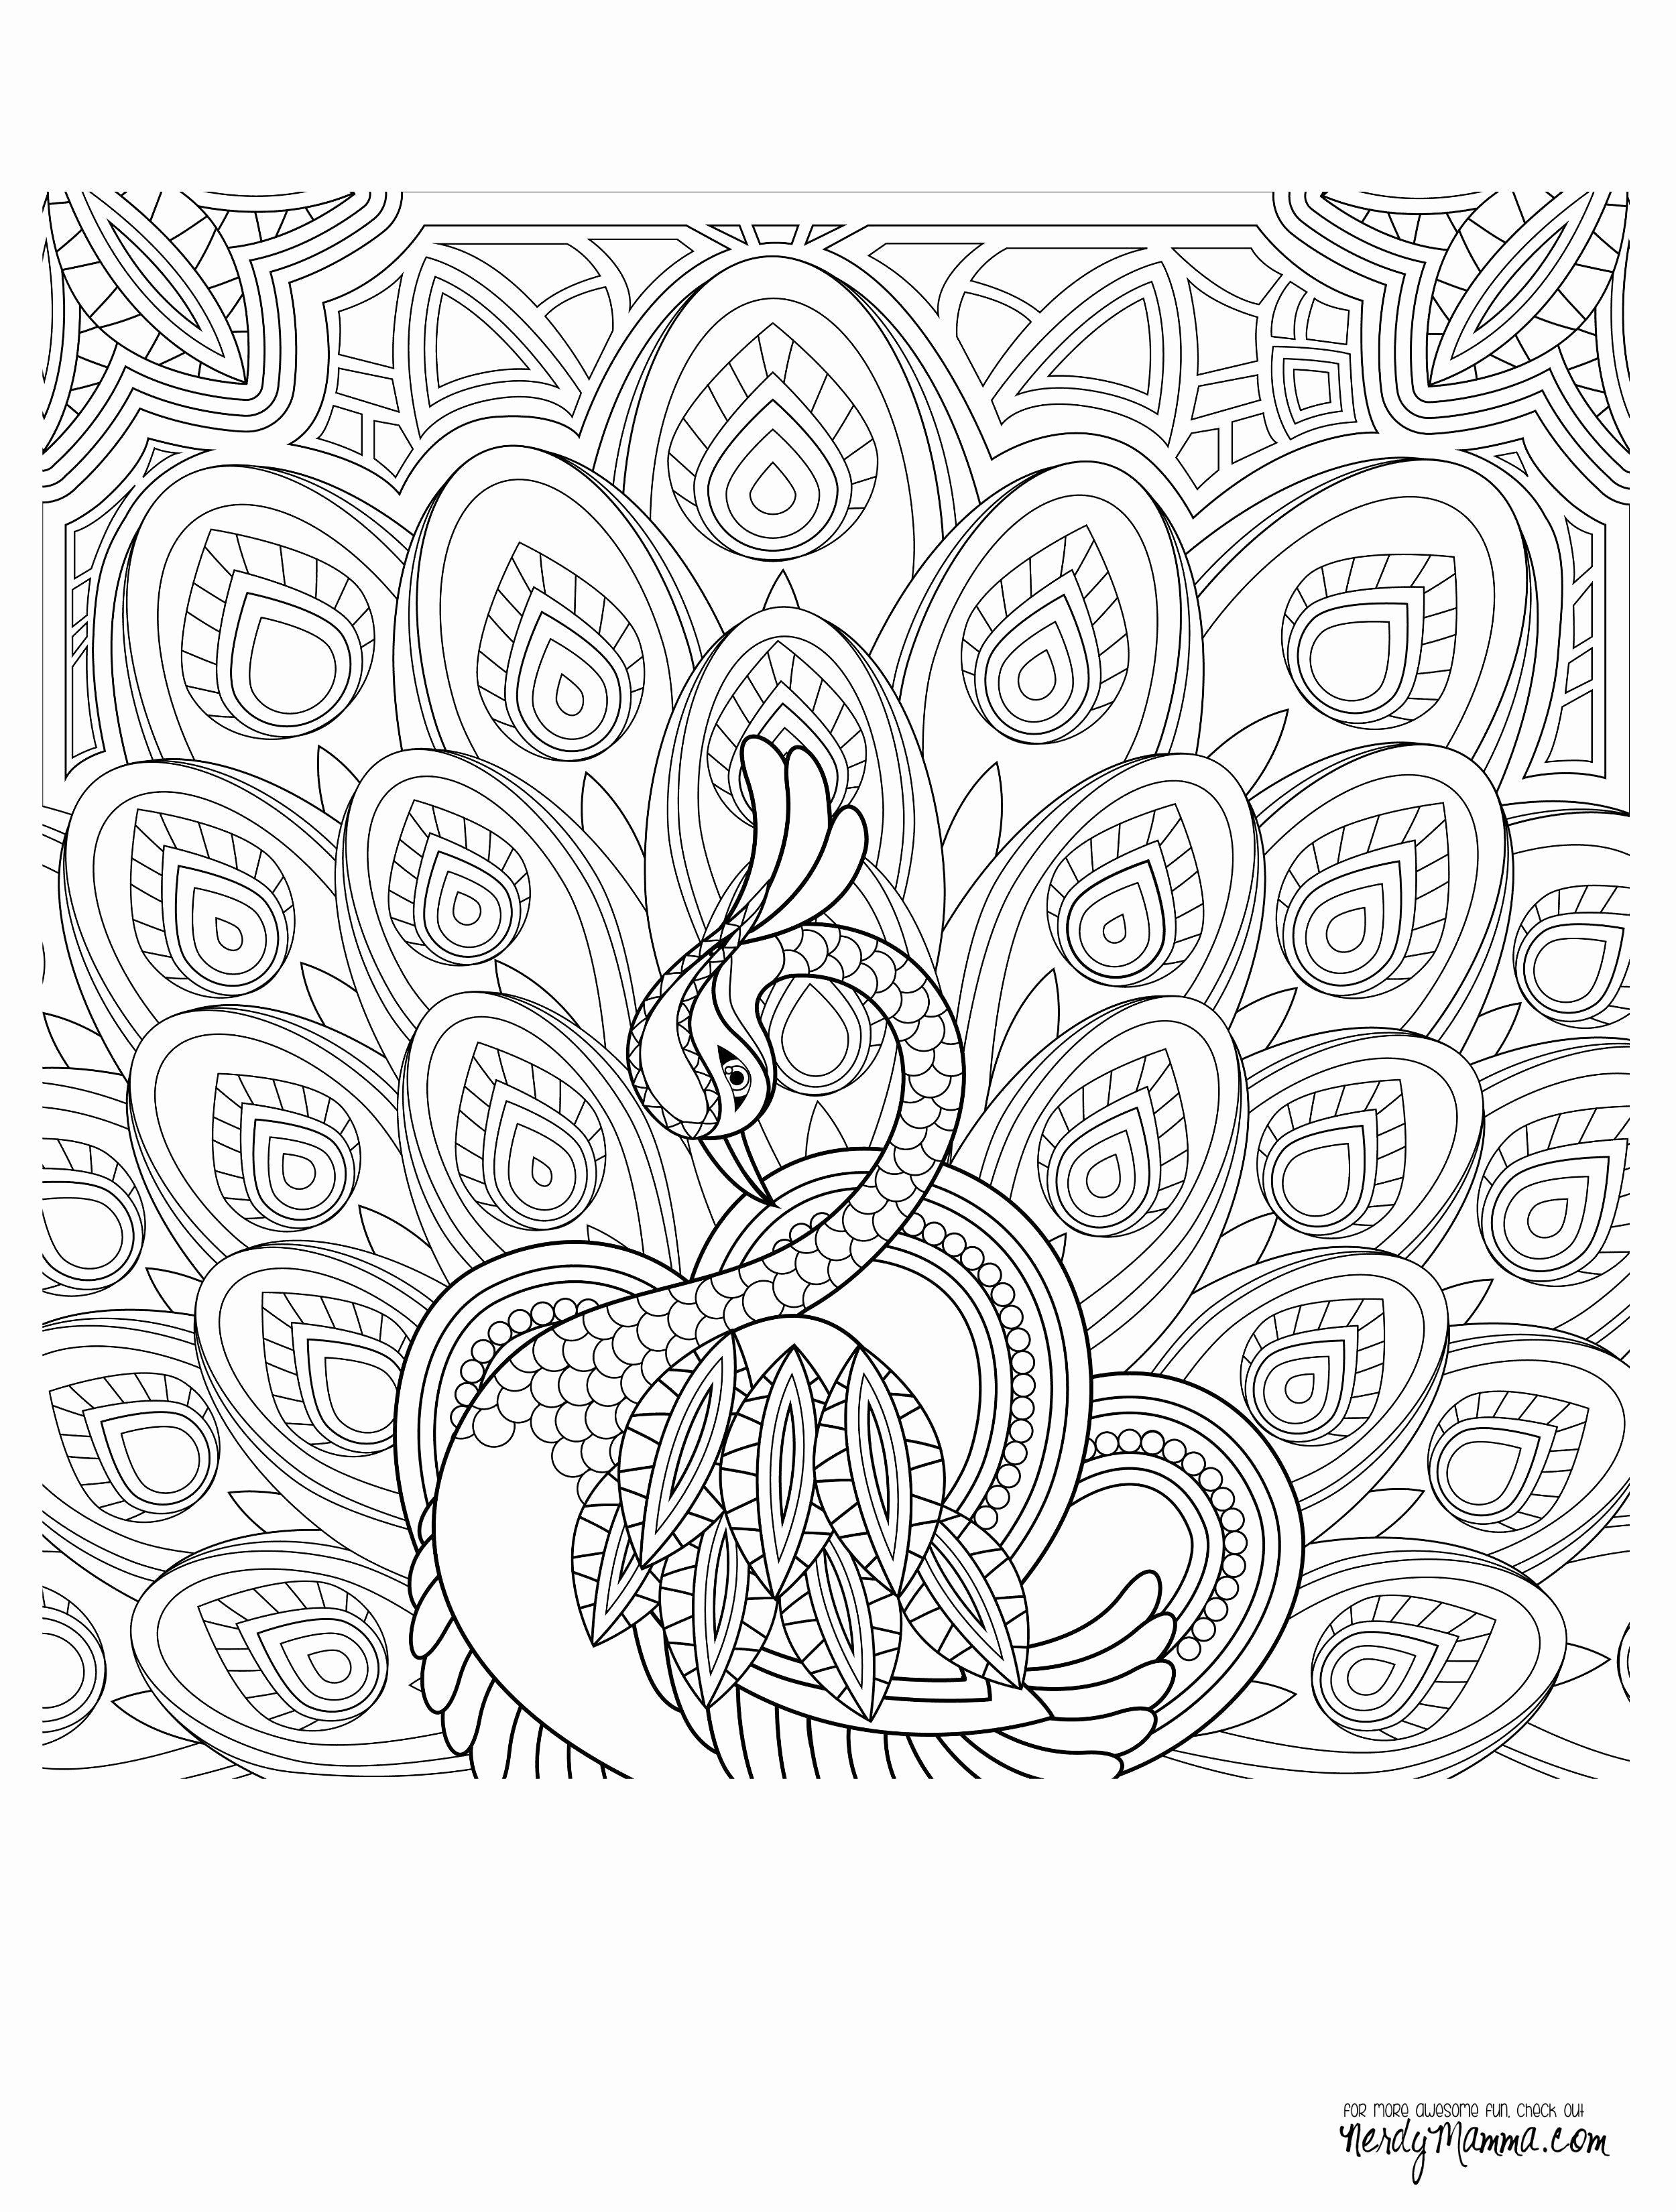 Colombian Flag Coloring Page Luxury 37 Western Coloring Pages